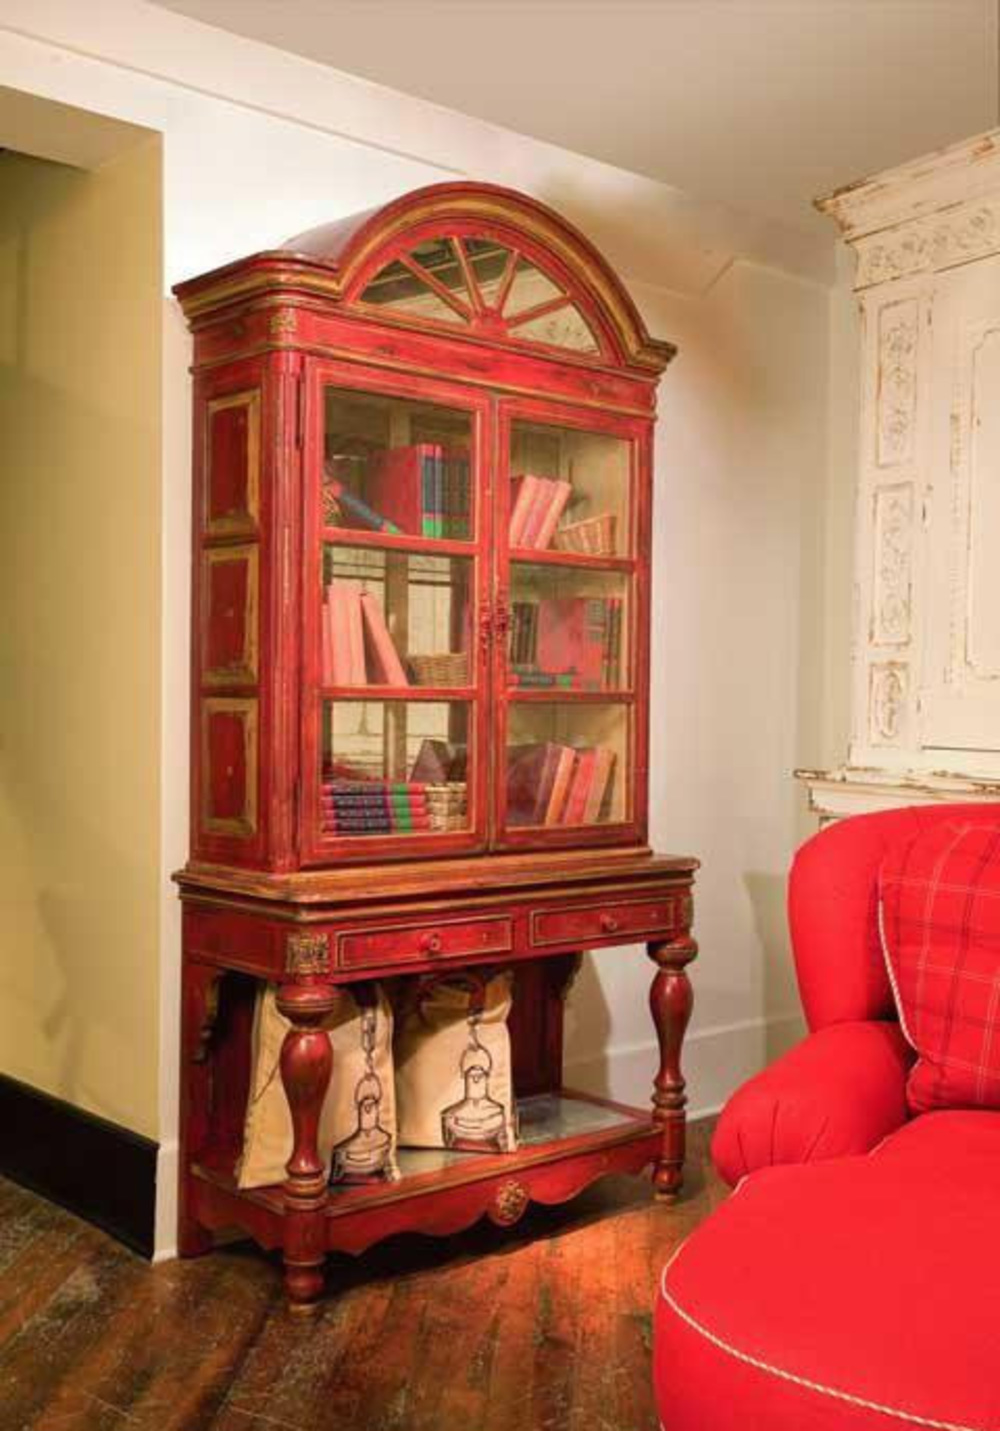 Habersham - Savannah Cabinet on Stand